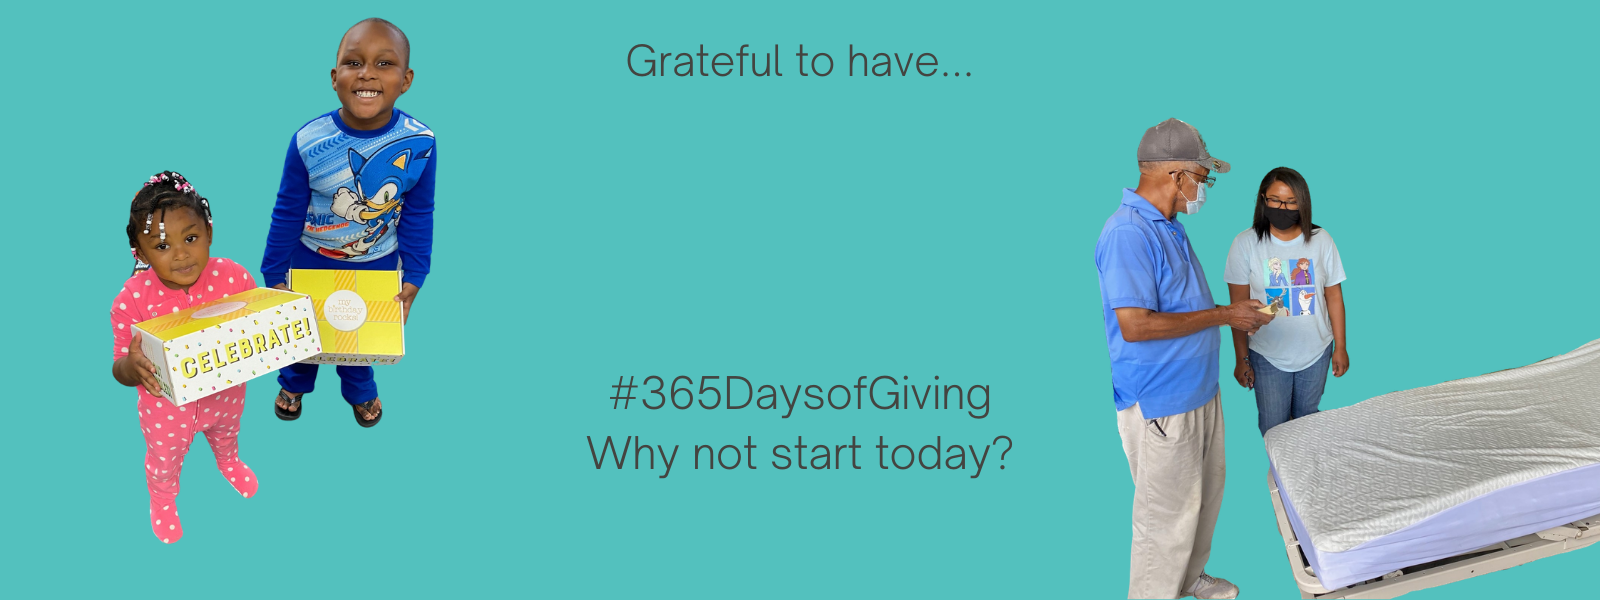 365 Days of Giving image